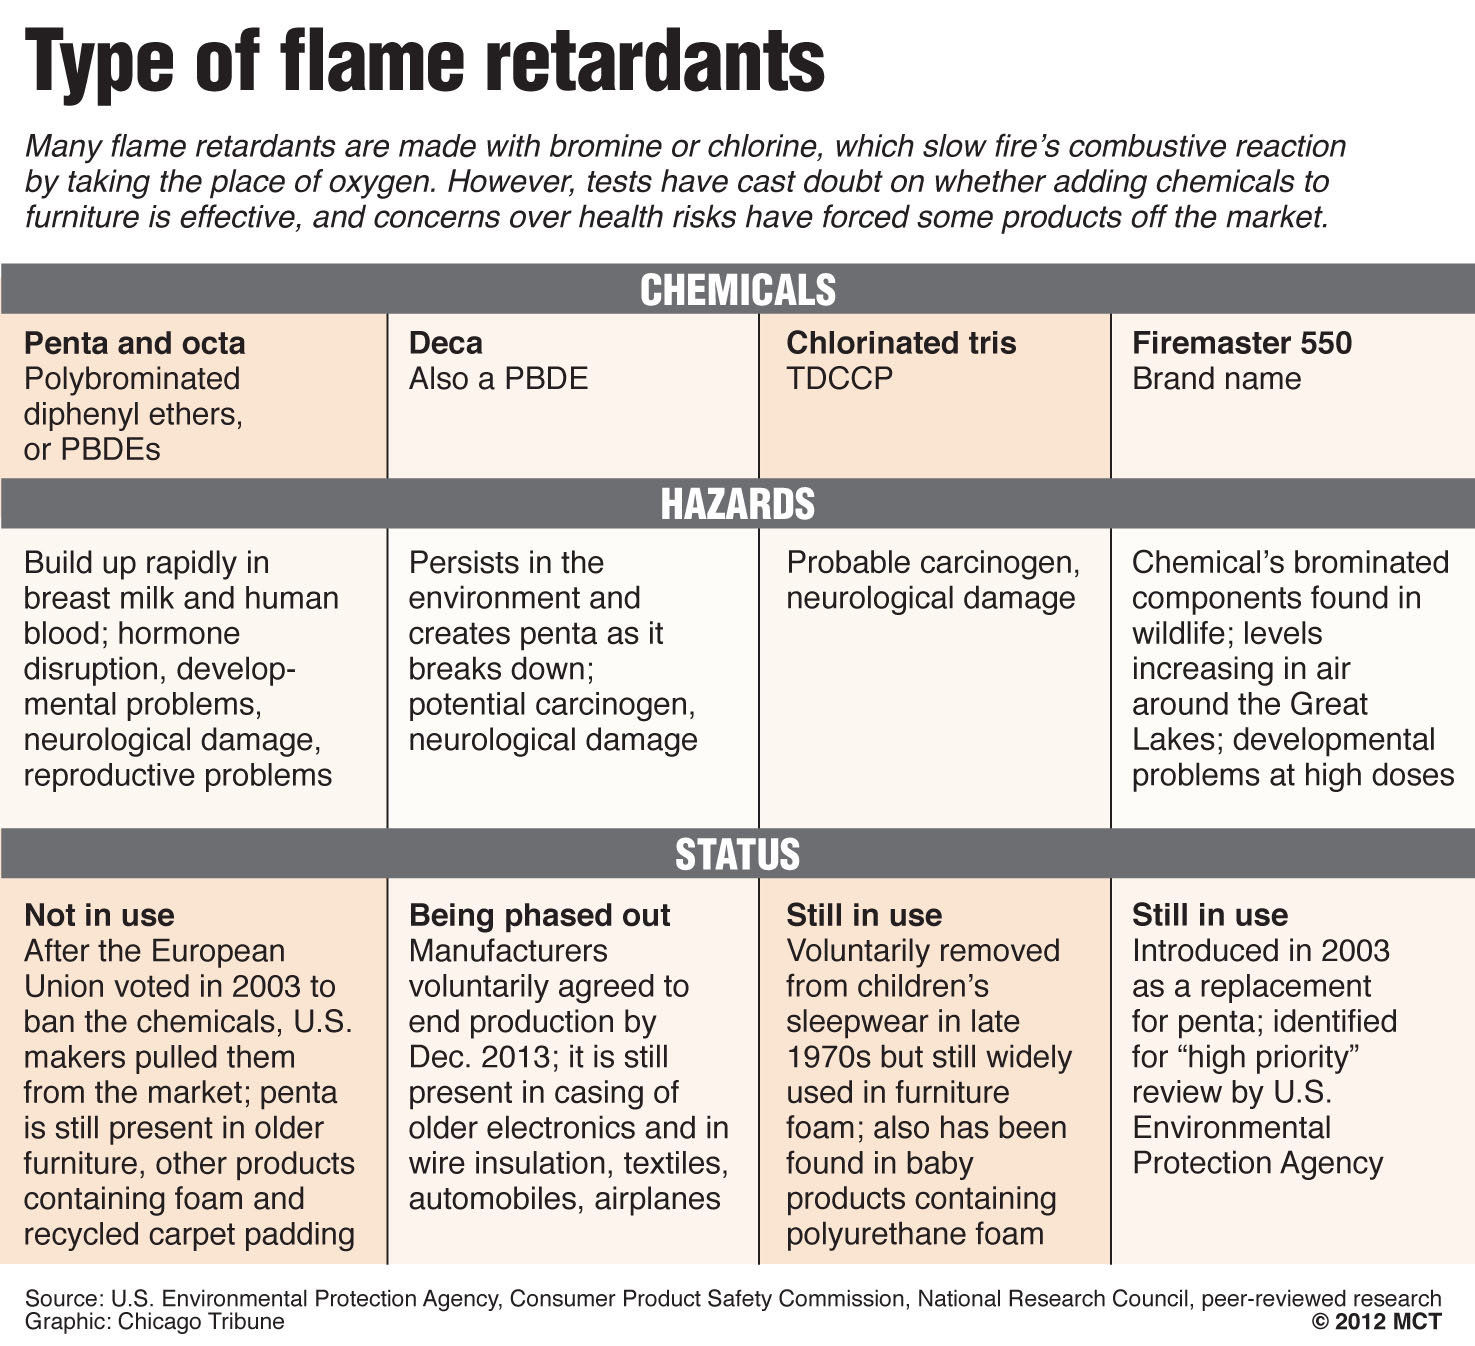 Scientists Find Signs of Toxic Flame Retardants in Americans